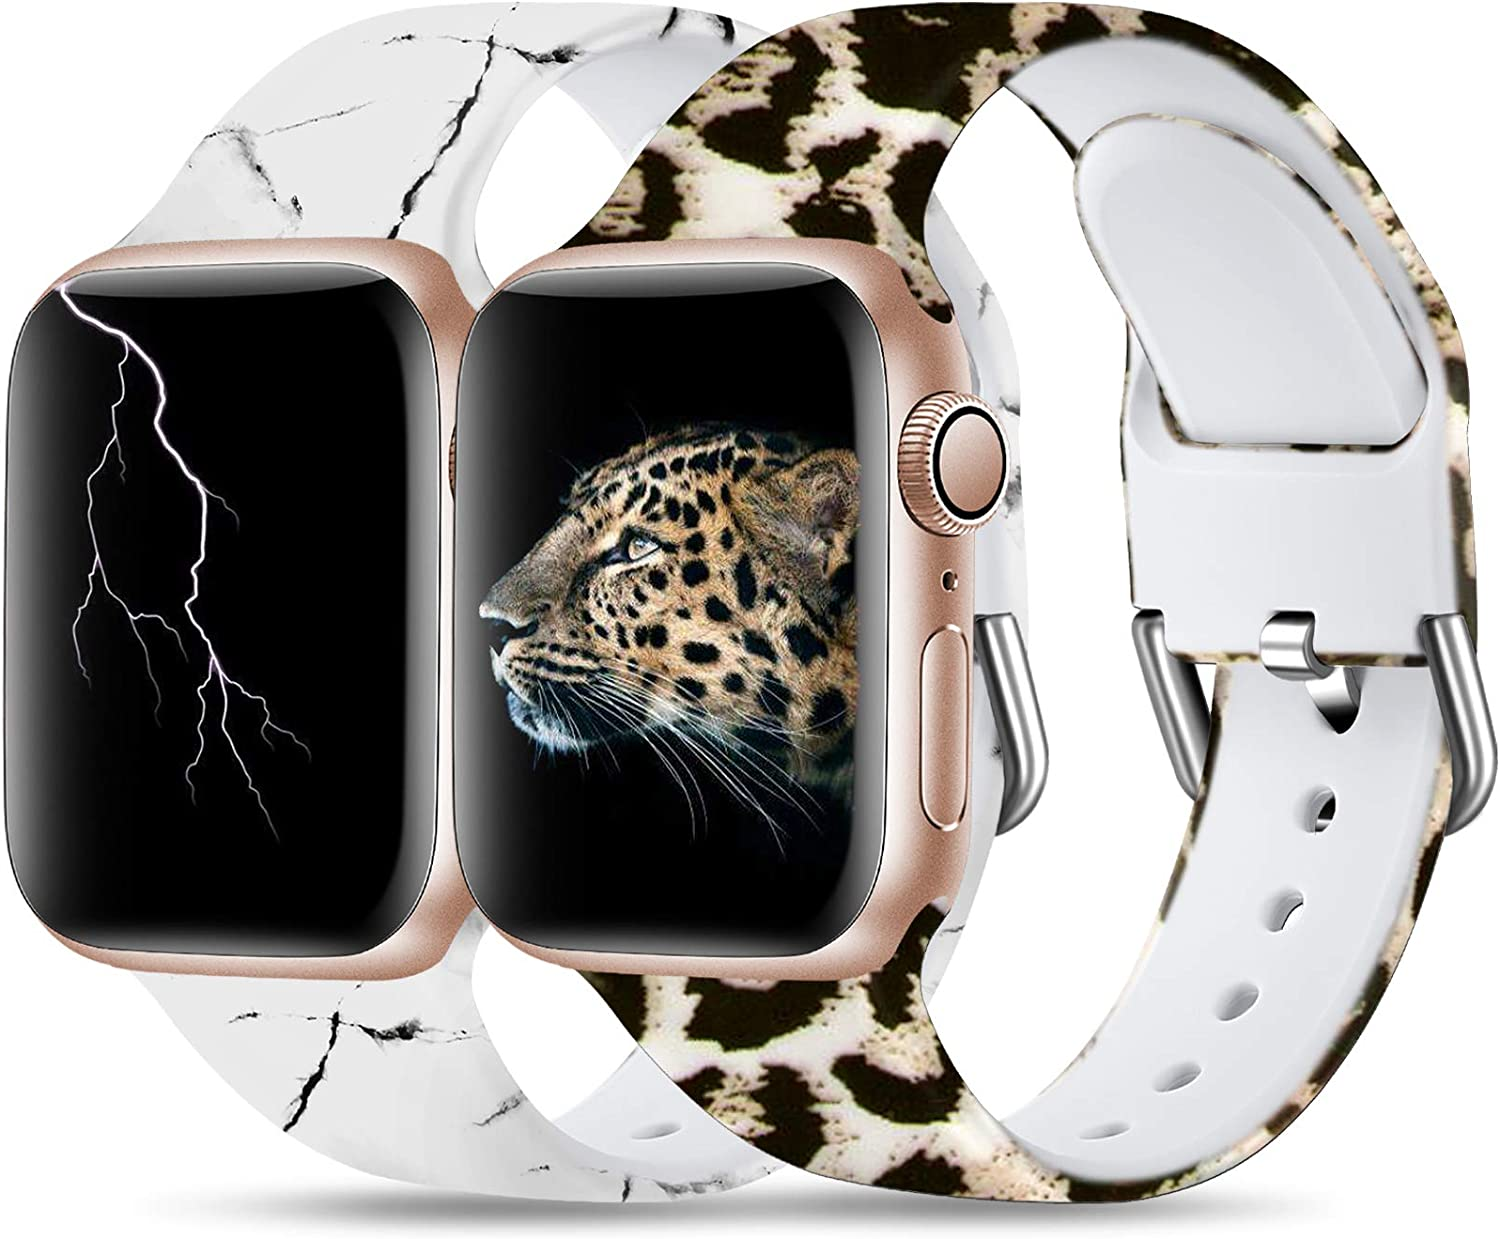 Dirrelo 2-Pack Bands Compatible for Apple Watch 40mm 38mm Soft Silicone Pattern Printed Band Strap for iWatch SE & Series 6 & Series 5 4 3 2 1 Women Wristband, S/M Marble & Leopard